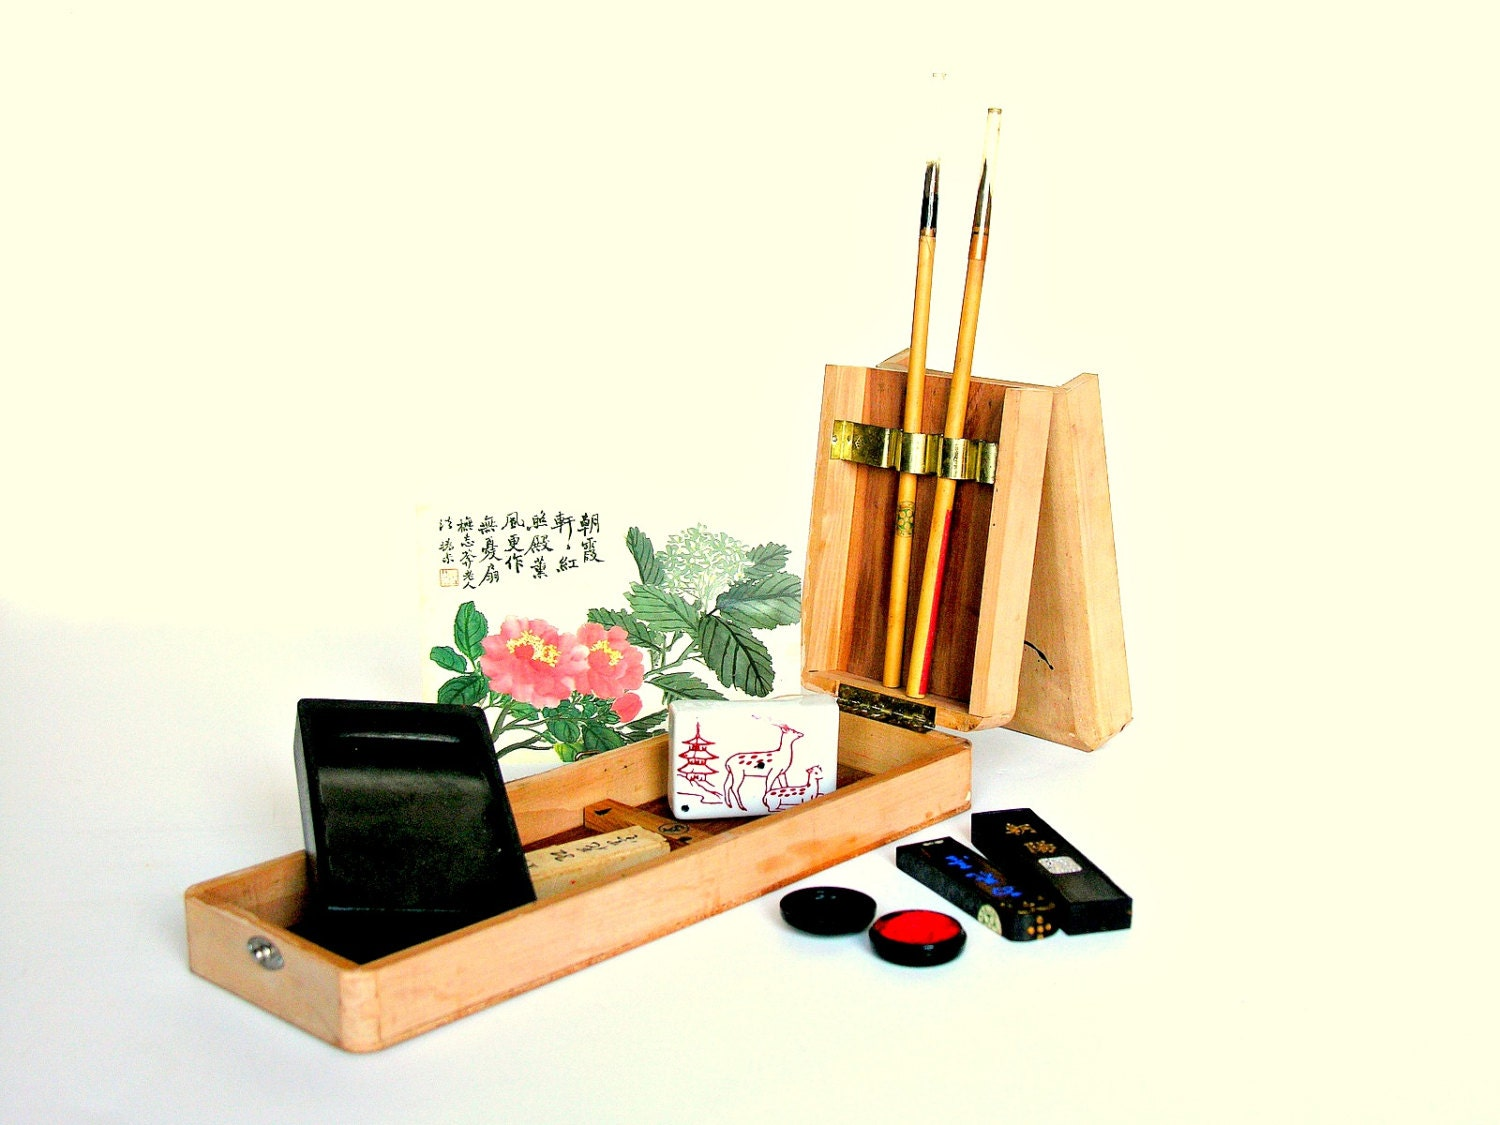 Vintage japanese calligraphy writing set in wooden box case Calligraphy writing set